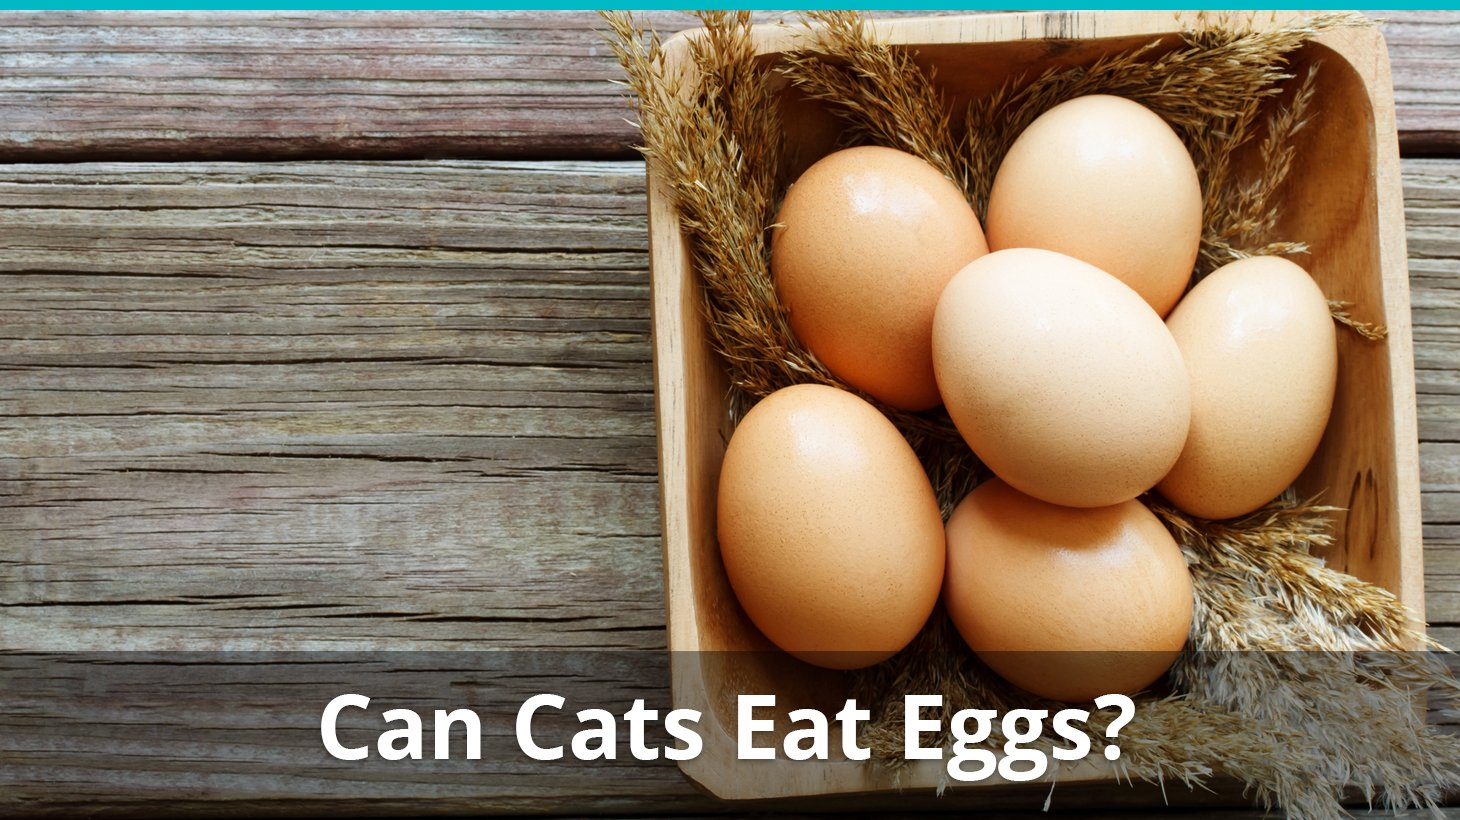 Can Cats Eat Eggs? Are They Safe And Good, Or Bad For Them?